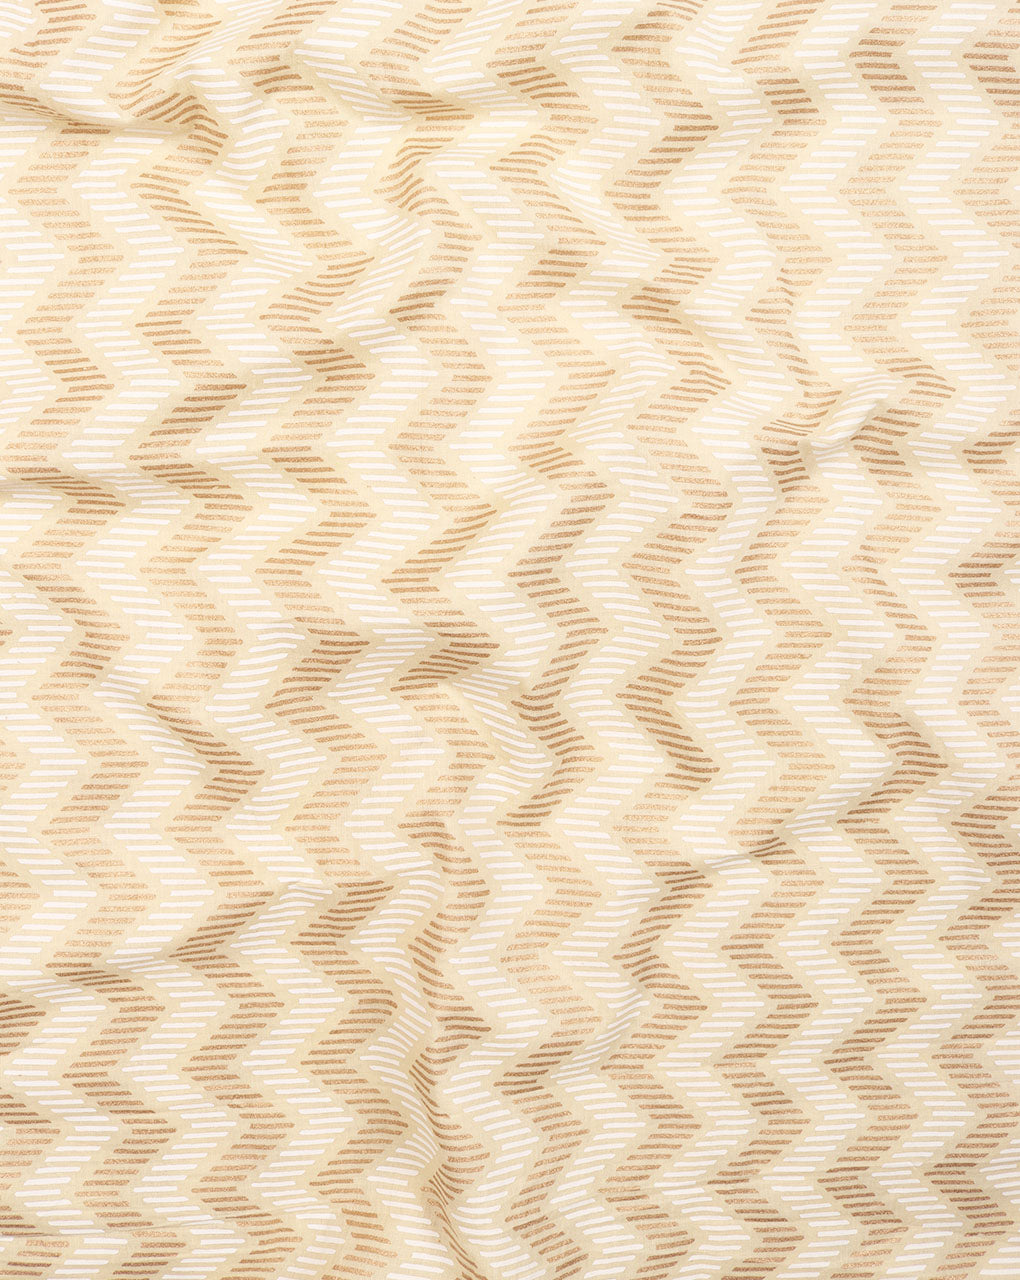 Off-White & Gold Chevron Screen Print Cotton Fabric – Fabriclore.com